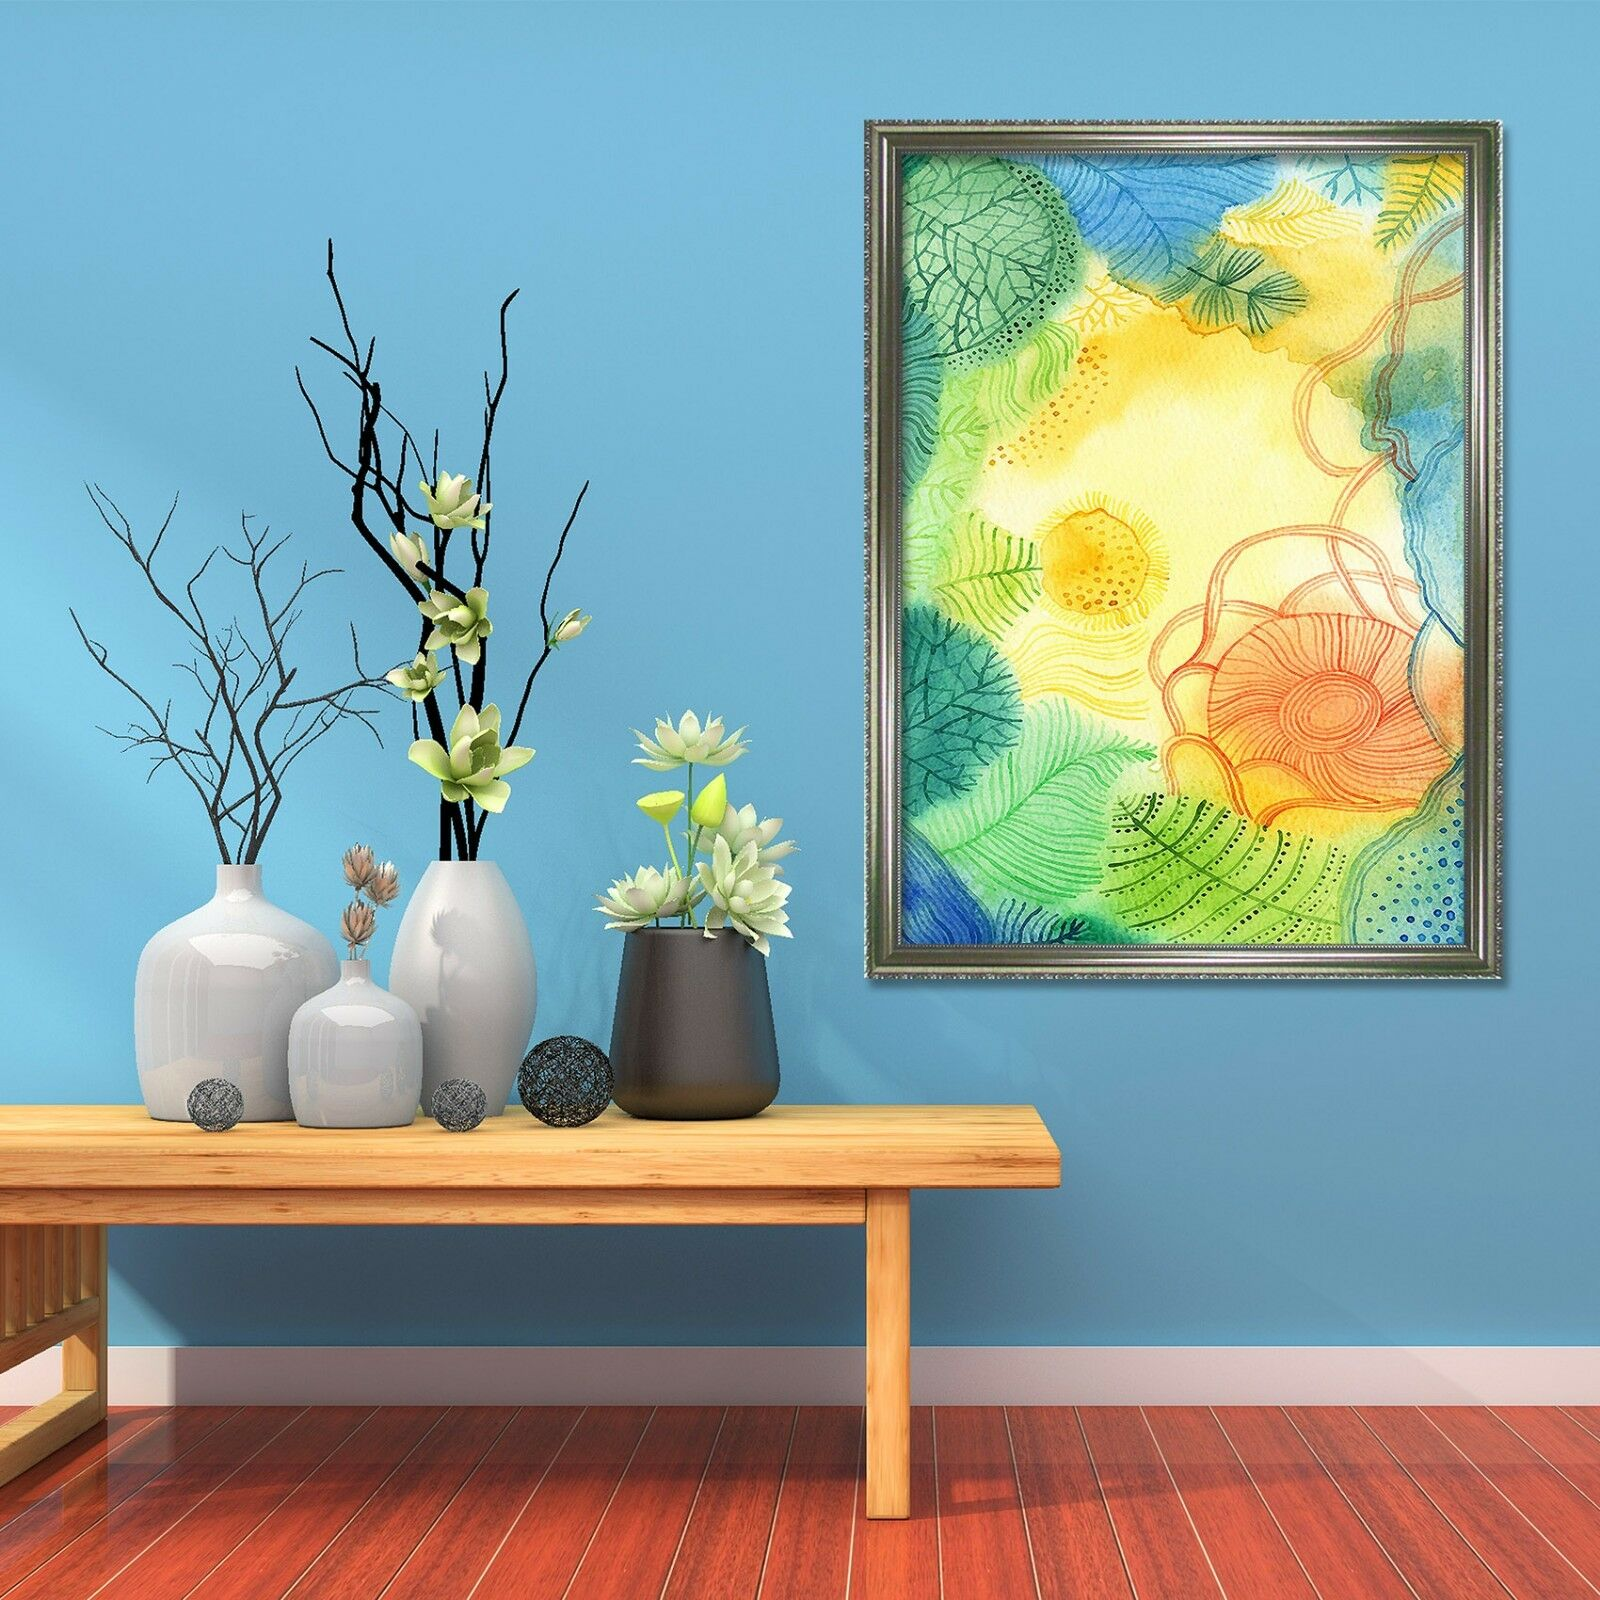 3D Ink Painting Lotus 69 Framed Poster Home Decor Print Painting Art AJ UK